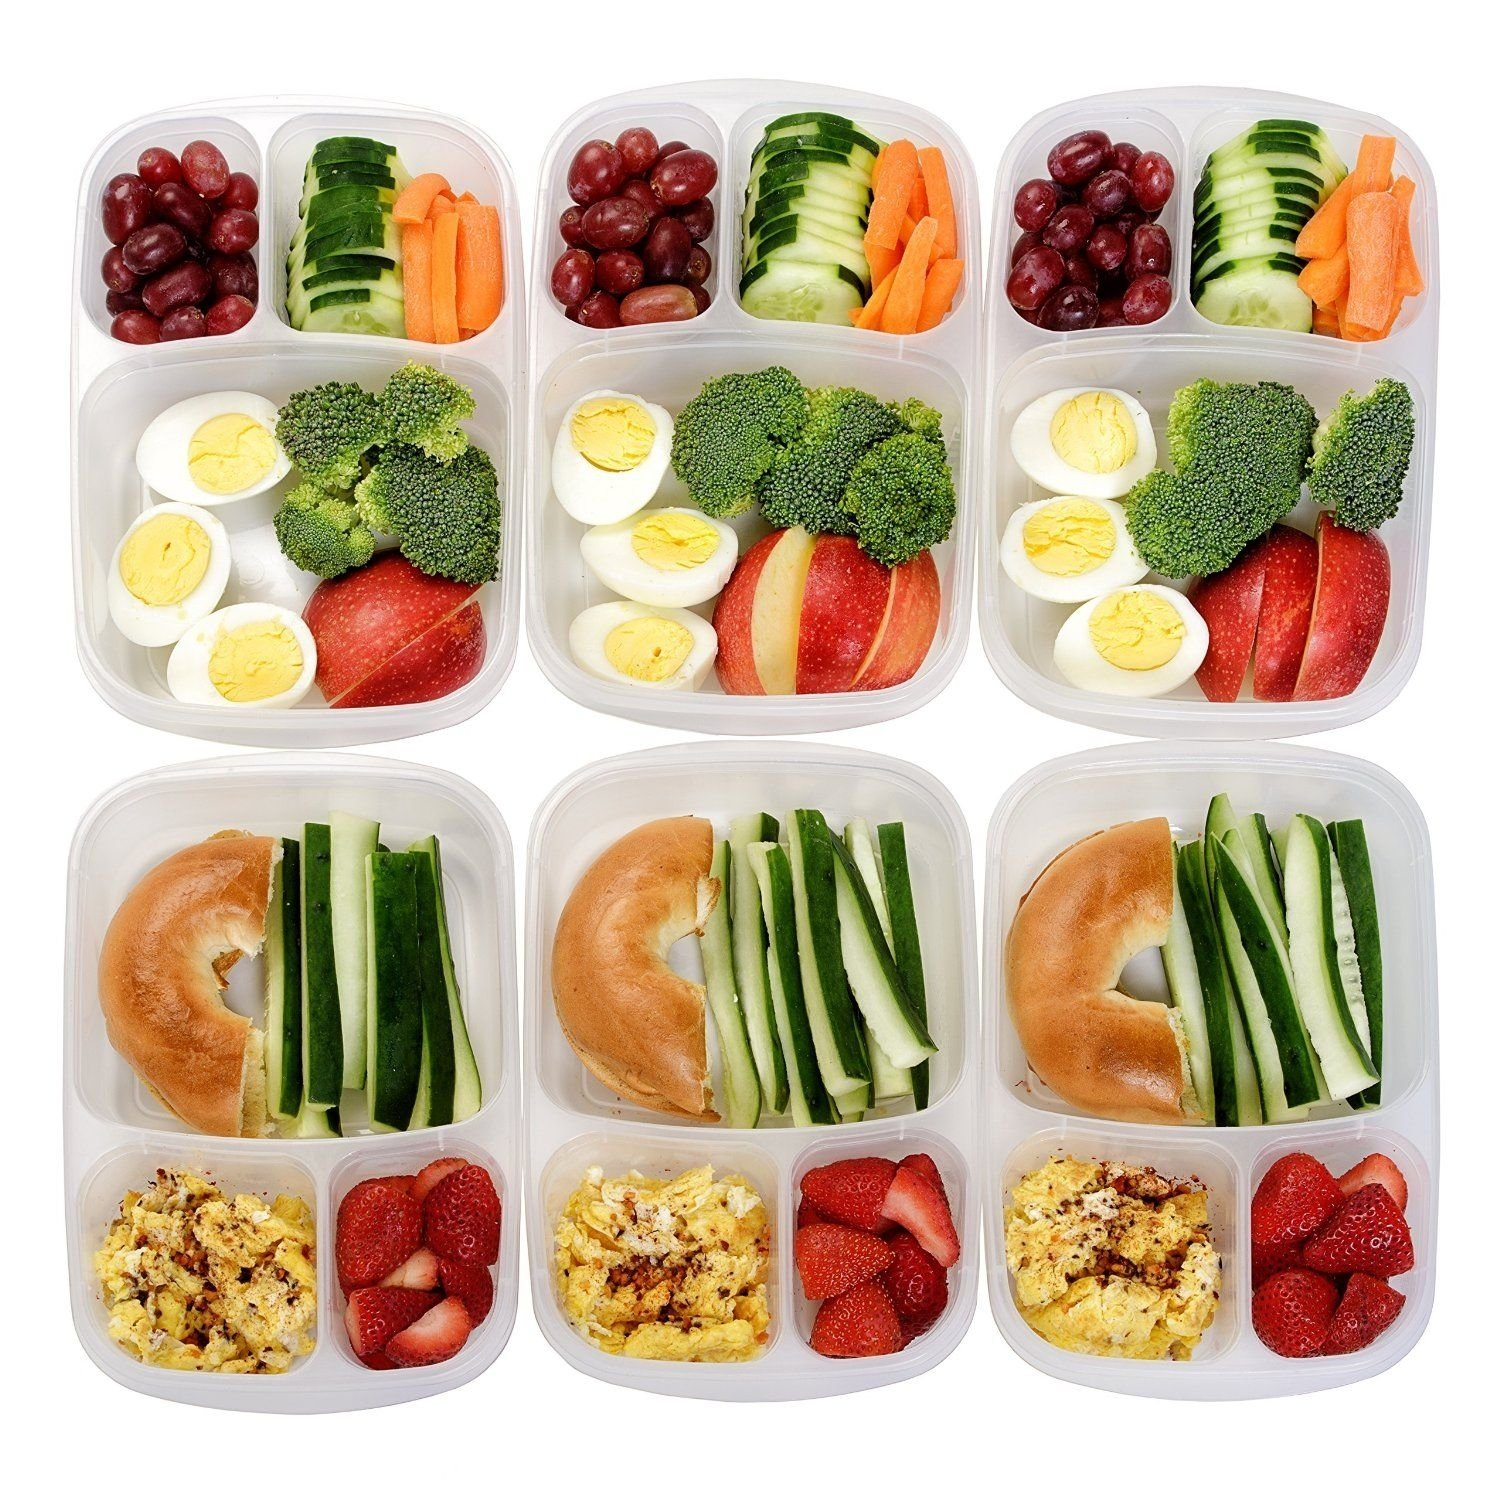 10 Fantastic Diet Ideas For Weight Loss 13 make ahead meals for healthy eating on the go meals snacks and 4 2020